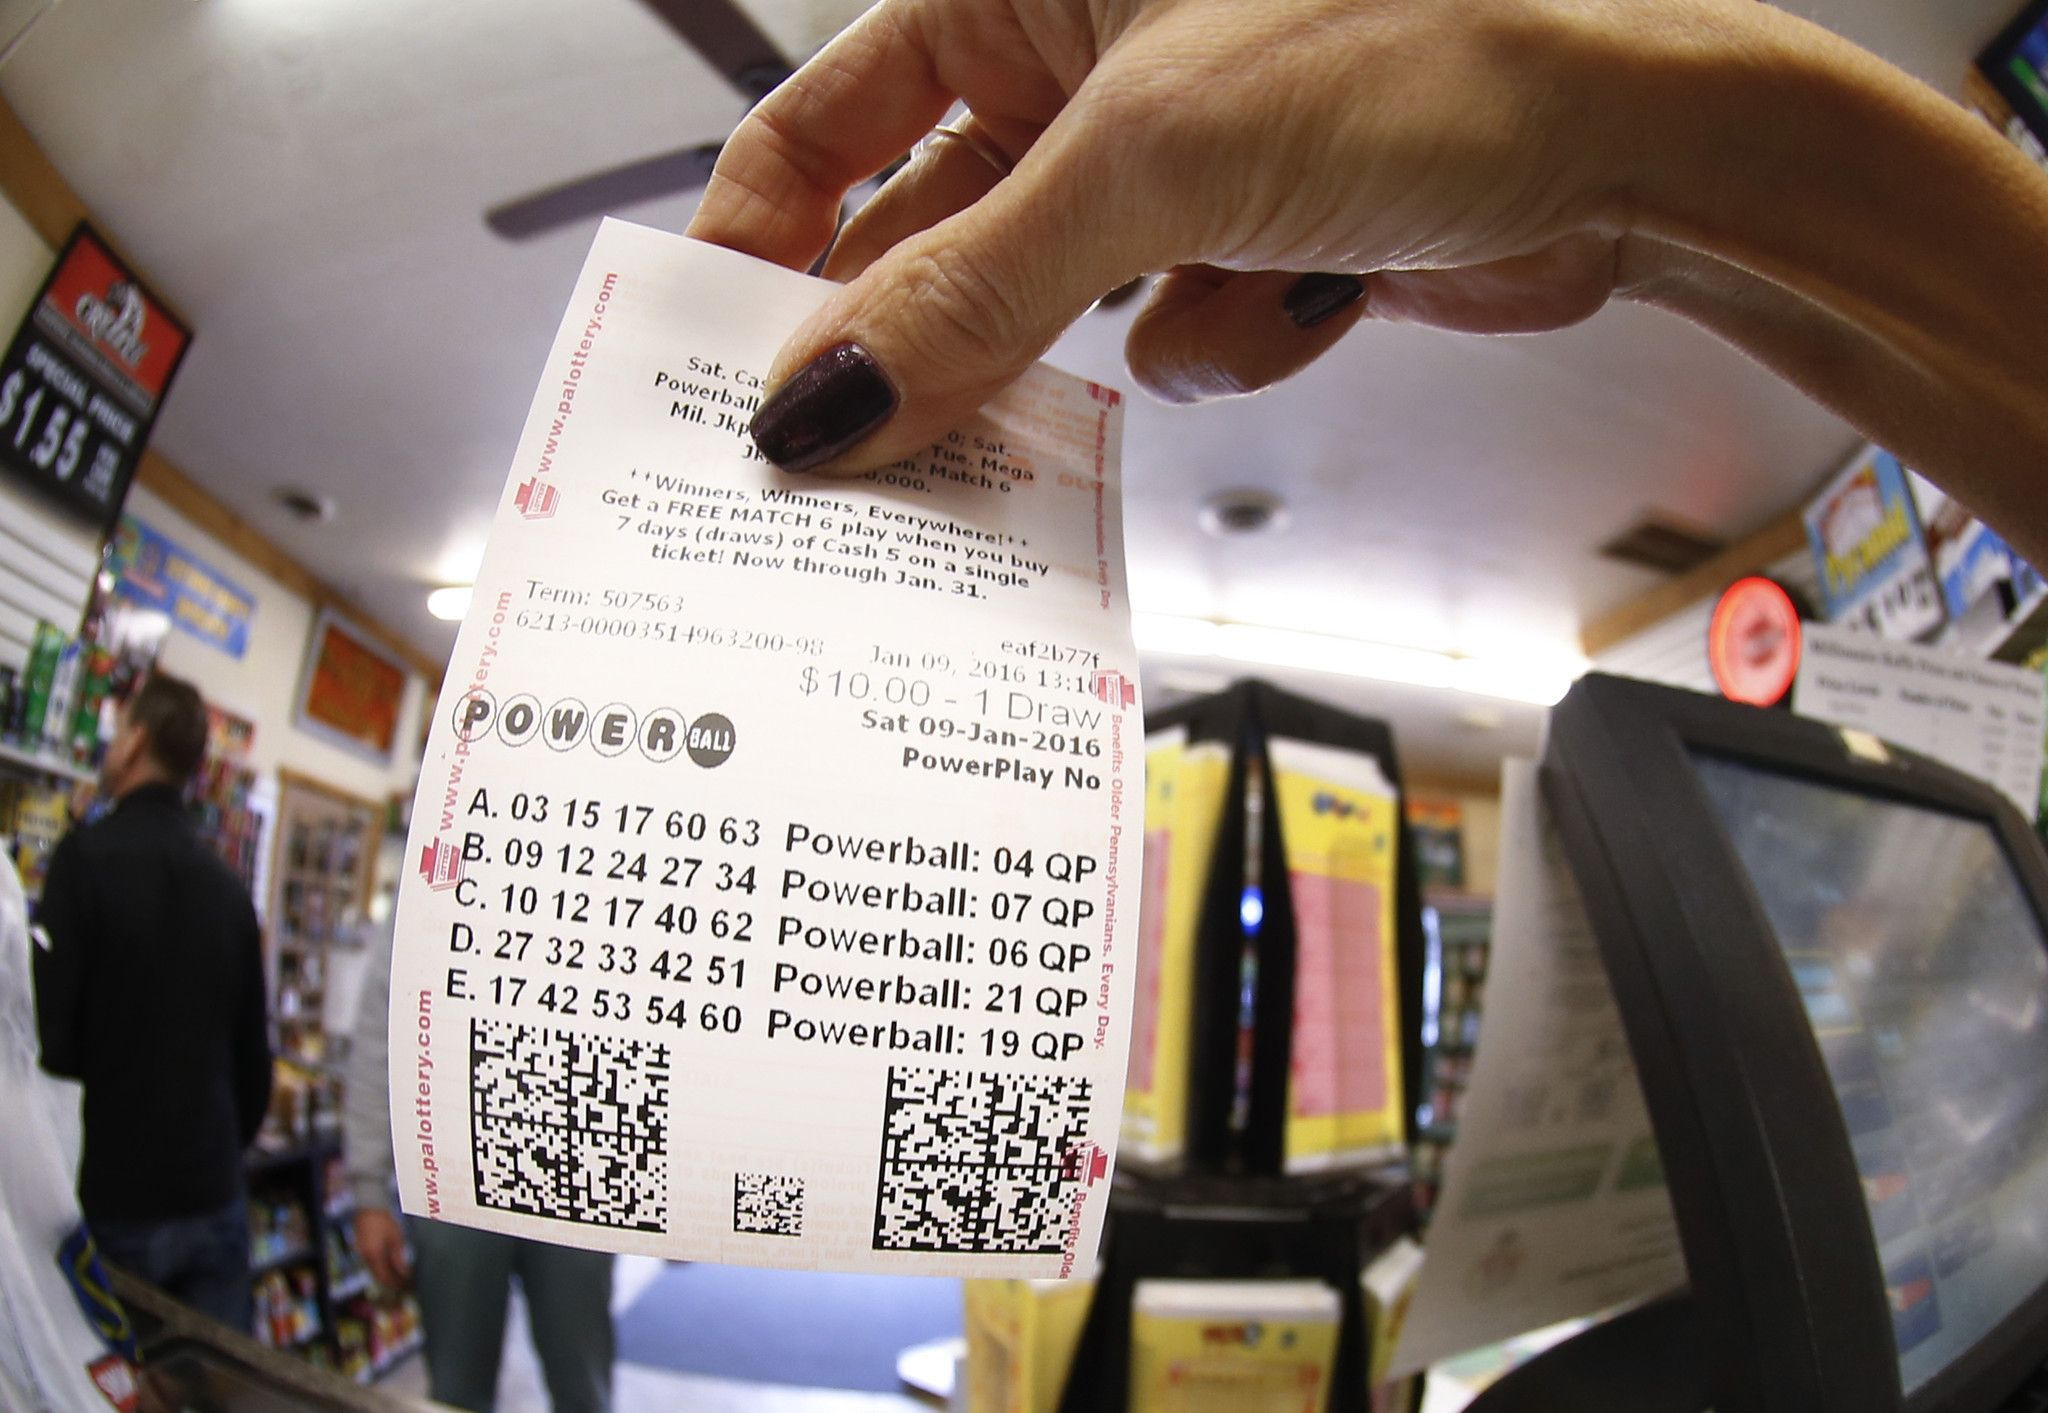 Didn't win the Powerball? You might still get a payout